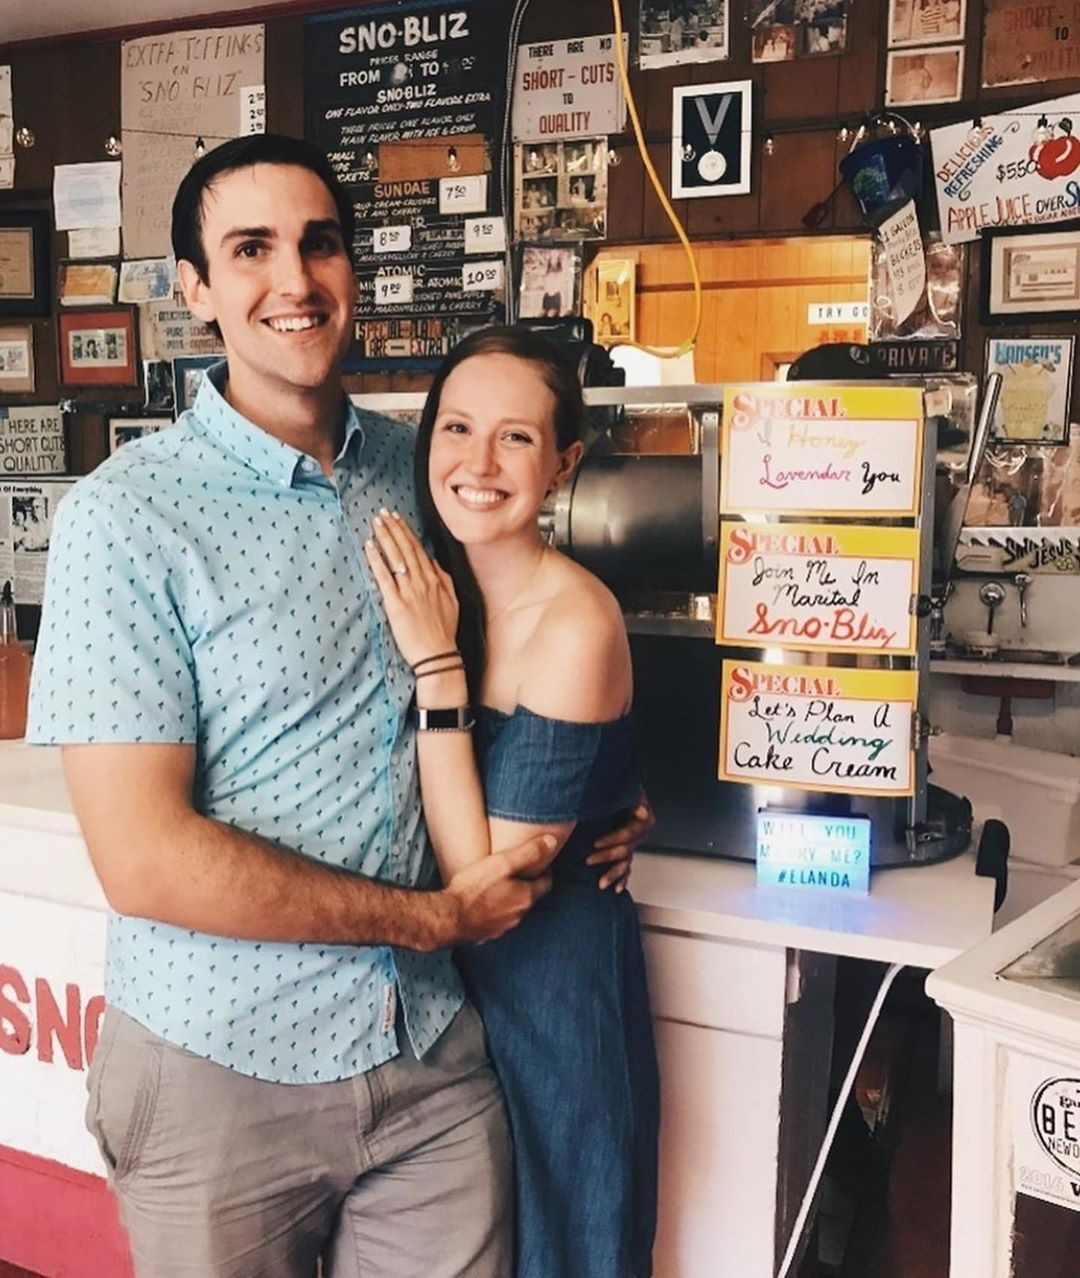 Congratulations to long-time Hansen's staffer Eli and his fiancée Amanda on their engagement and super cute proposal at the stand!  Check out the special flavors of the day: I Honey Lavender You, Join Me in Marital Sno-Bliz, Let's Plan a Wedding Cake Cream!